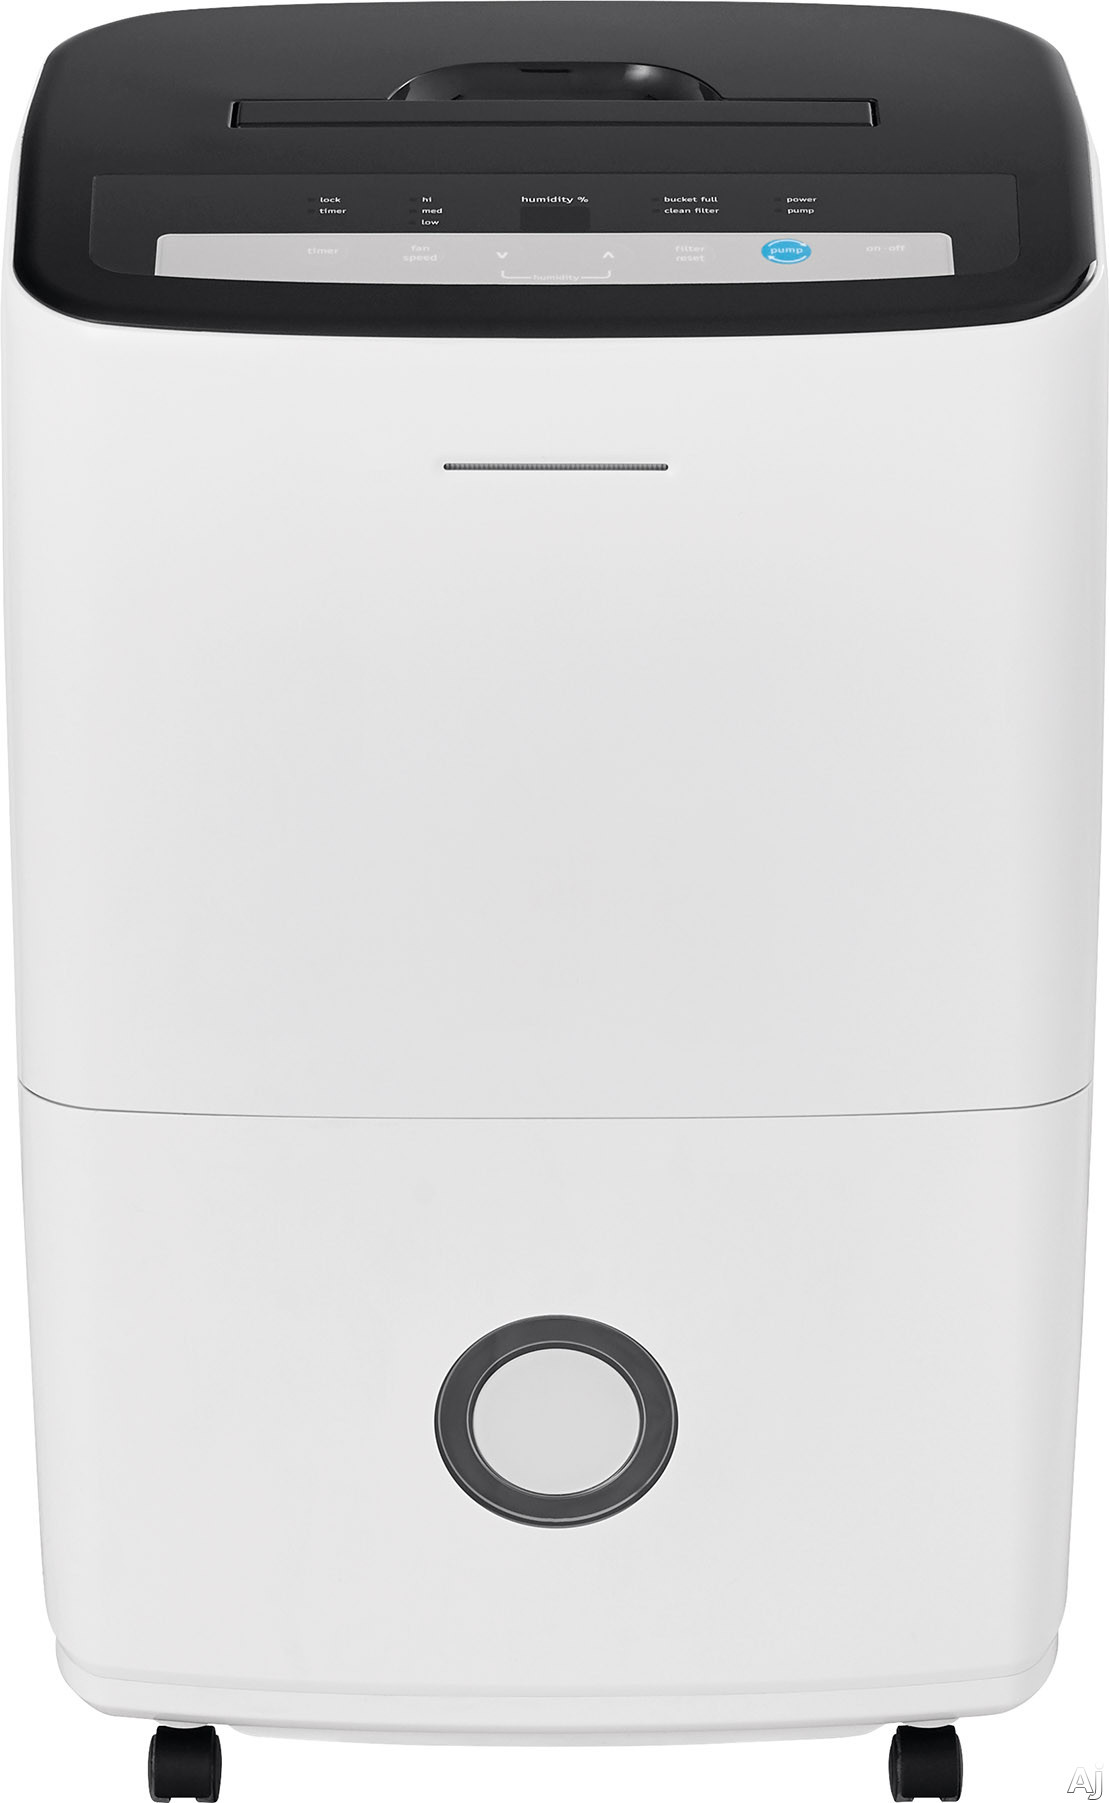 Frigidaire FFAP7033T1 70 Pint Capacity Dehumidifier with Effortless™ Humidity Control, Full Tank Alert, Automatic Shut-Off, Effortless™ Clean Filter, Continuous Drain Option, Low Temperature Operation and ENERGY STAR® Certified FFAP7033T1